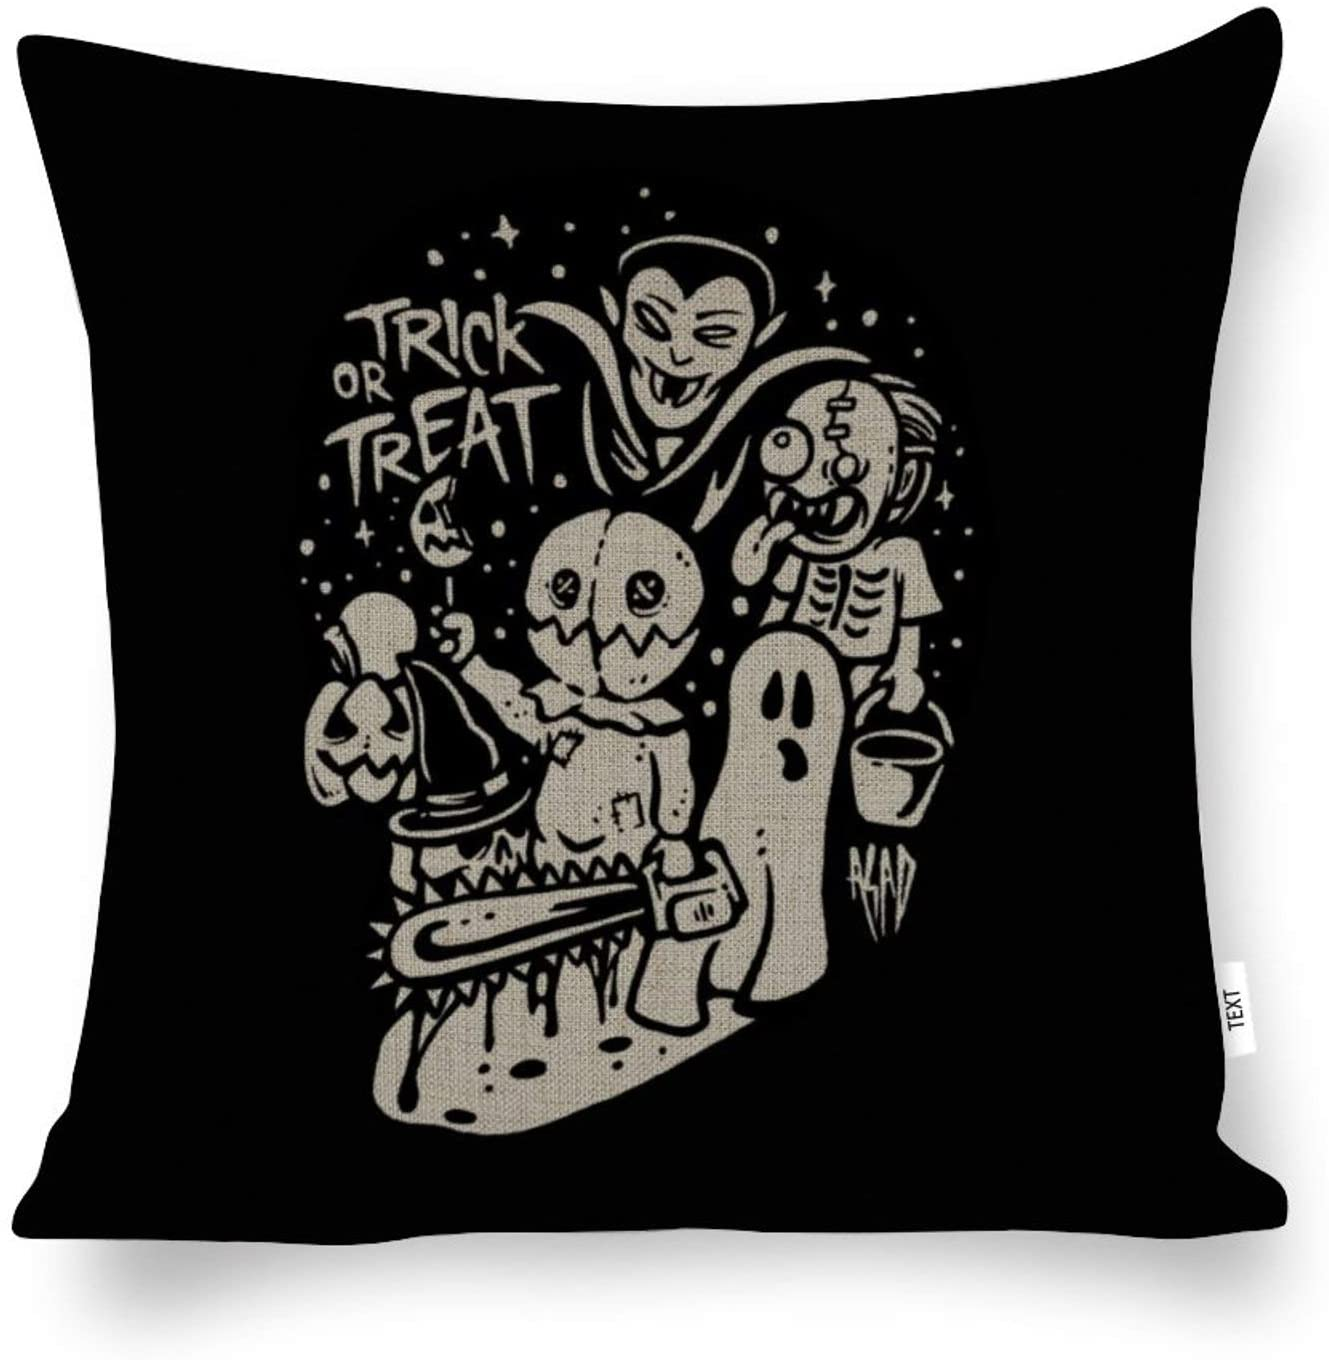 AILOVYO Decorative Cotton and Hemp Throw Pillow Covers Family Halloween Ghost Trick Or Treat for Room Bedroom Room Sofa Chair Car